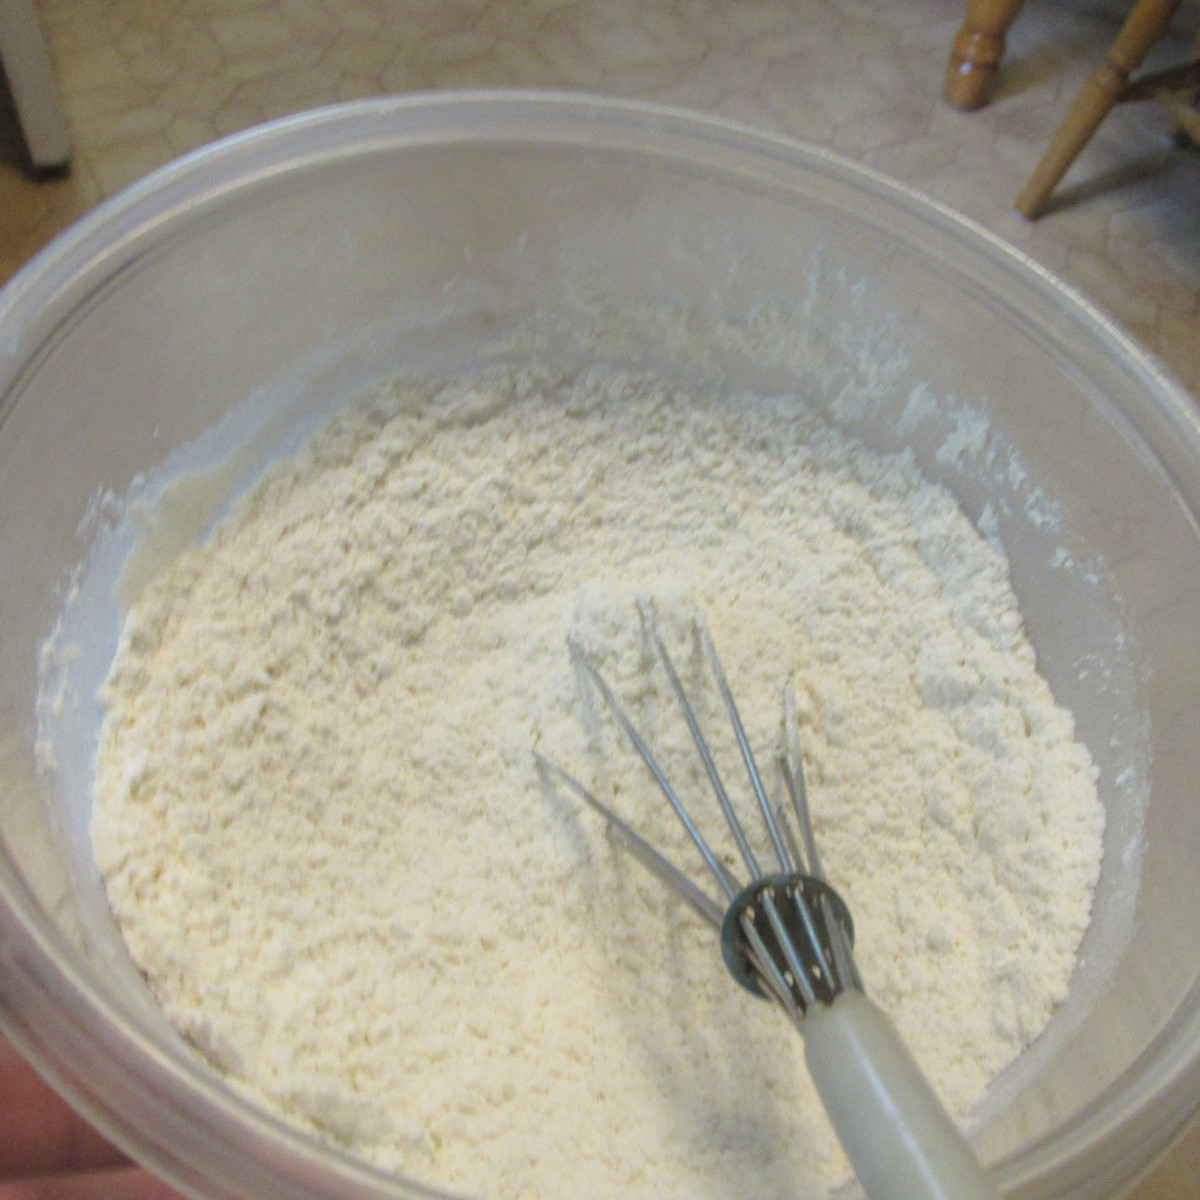 Whisk the flour mixture.